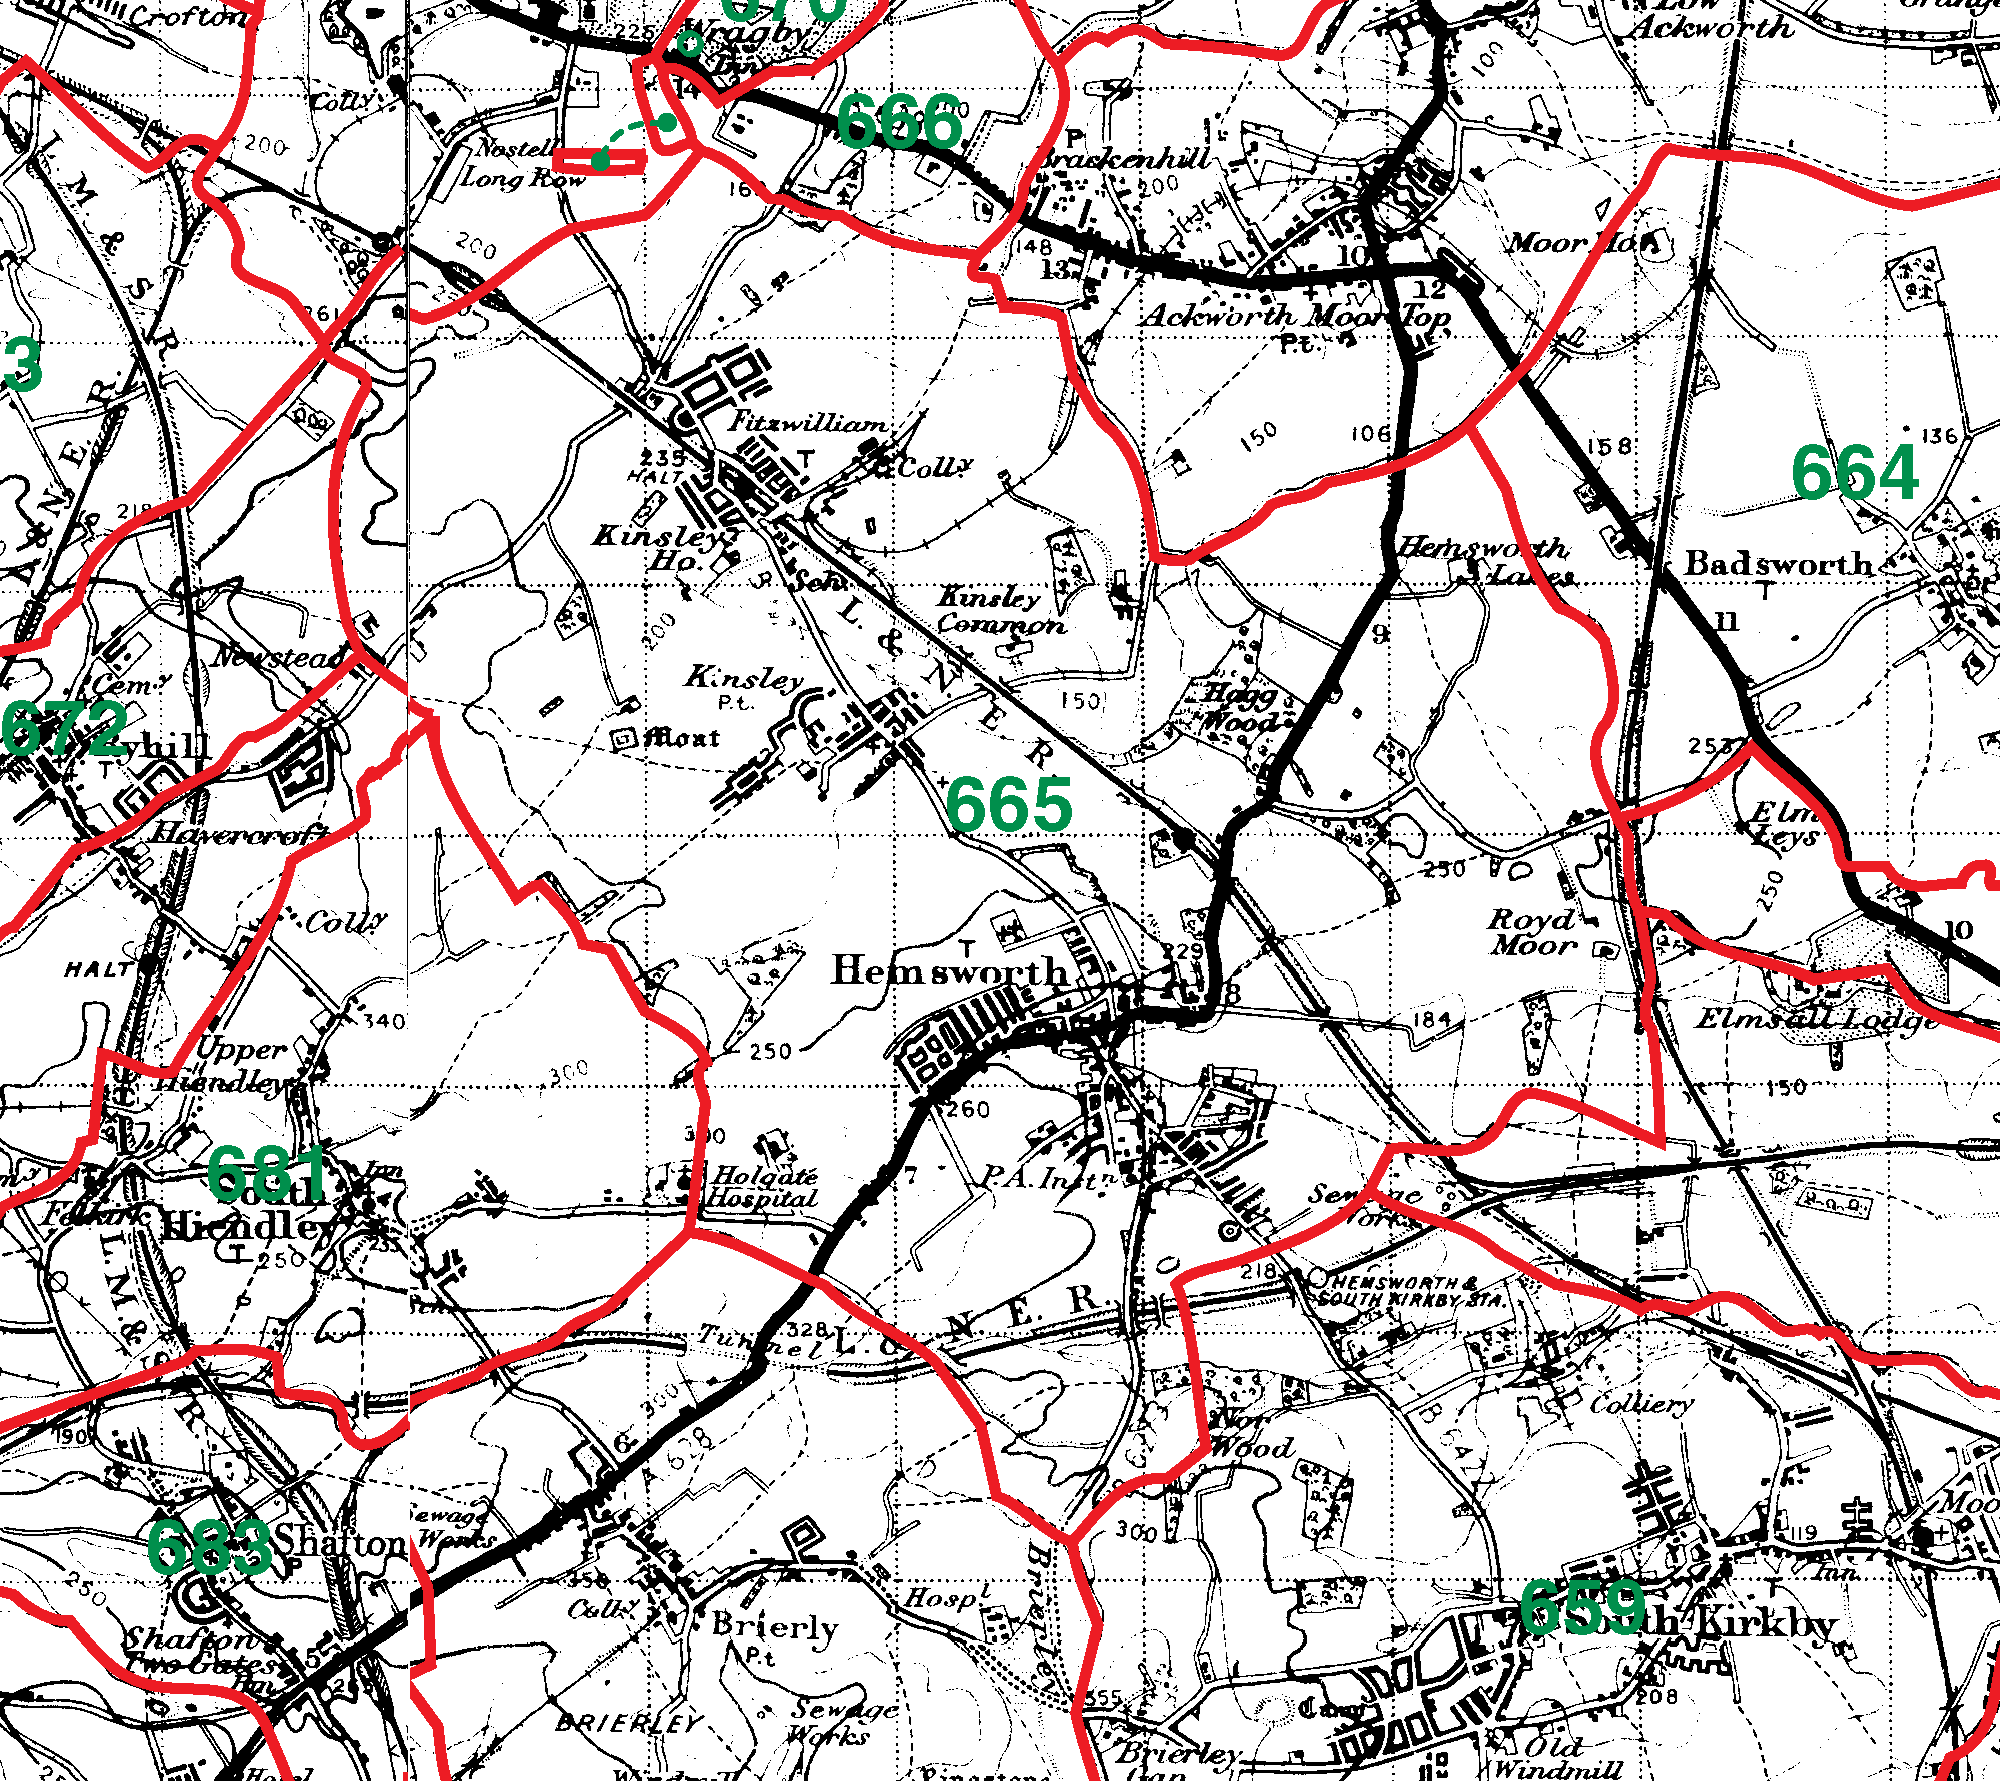 Hemsworth boundaries map